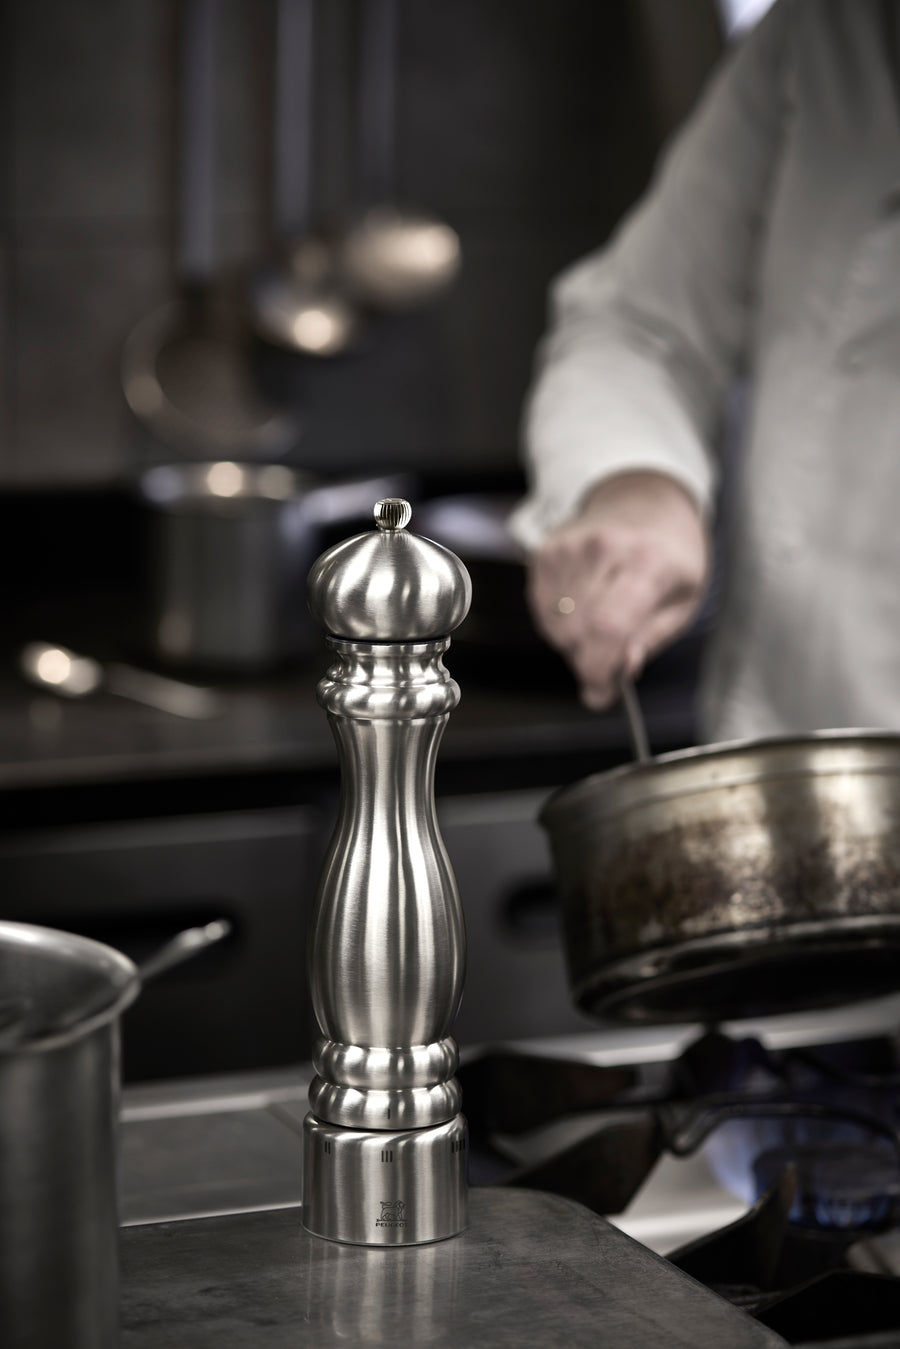 Peugeot Paris Chef Stainless Steel Pepper Mill, 12